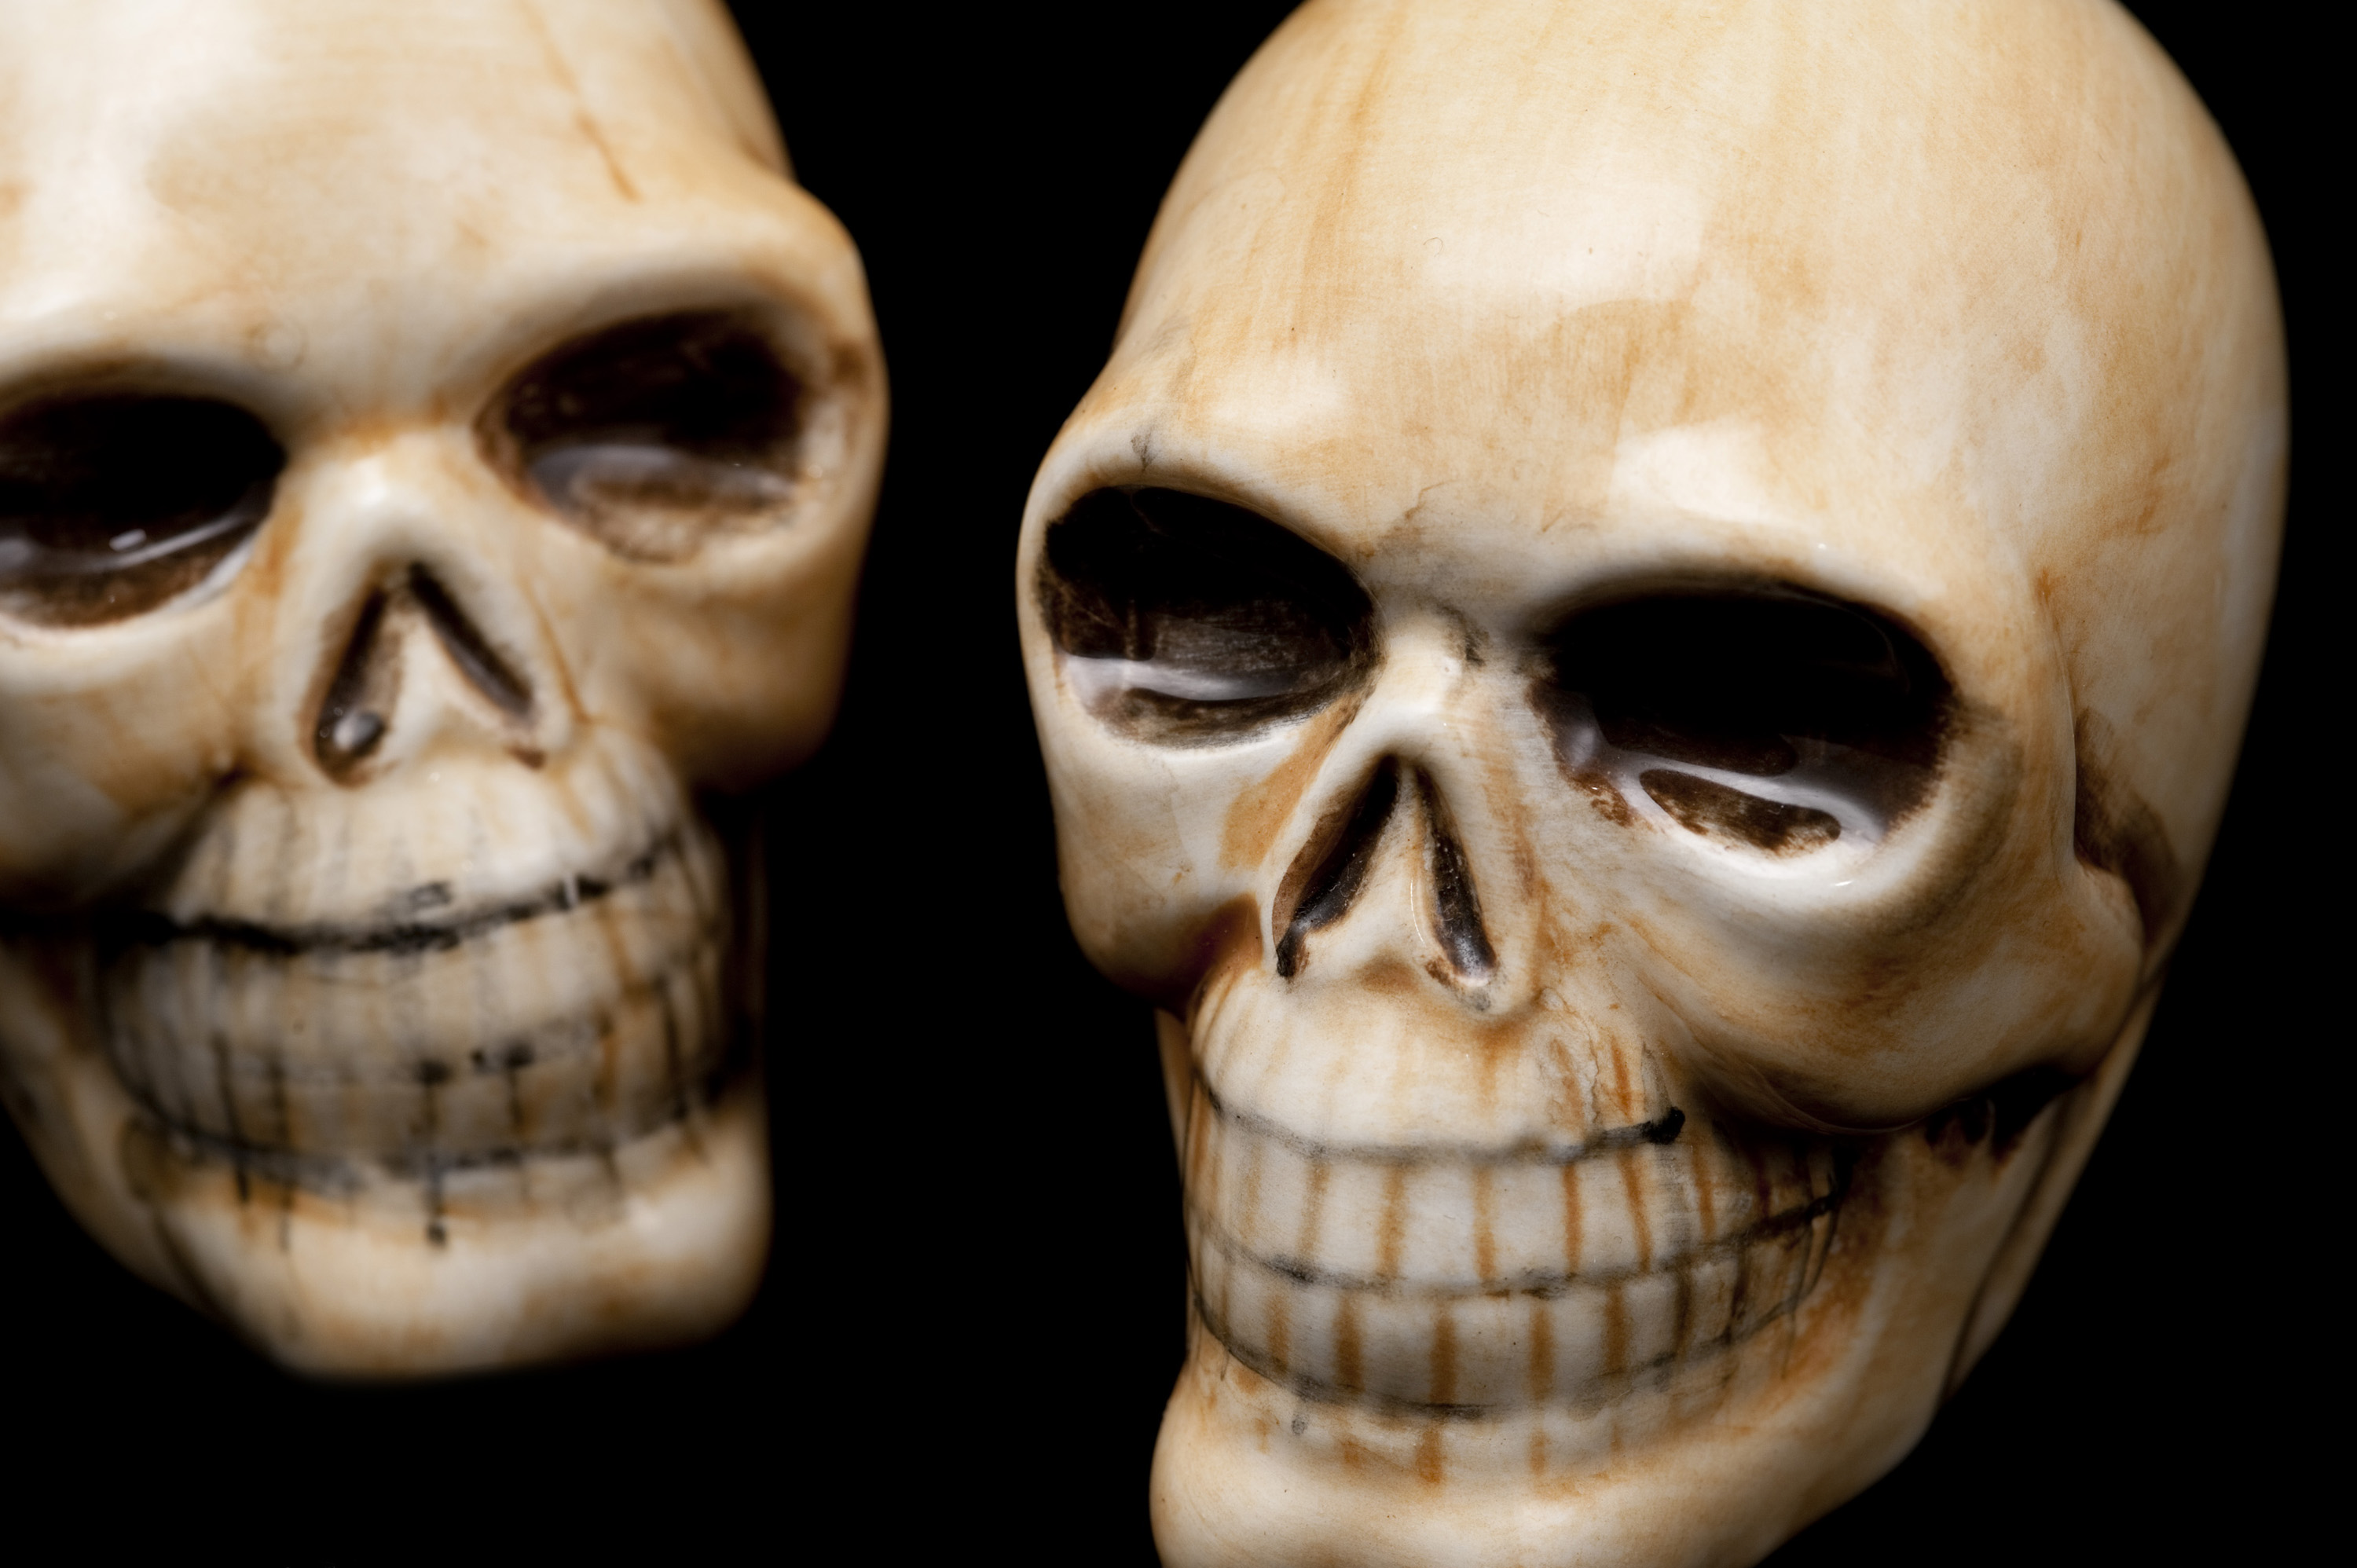 accept license and download image - Halloween Skulls Pictures